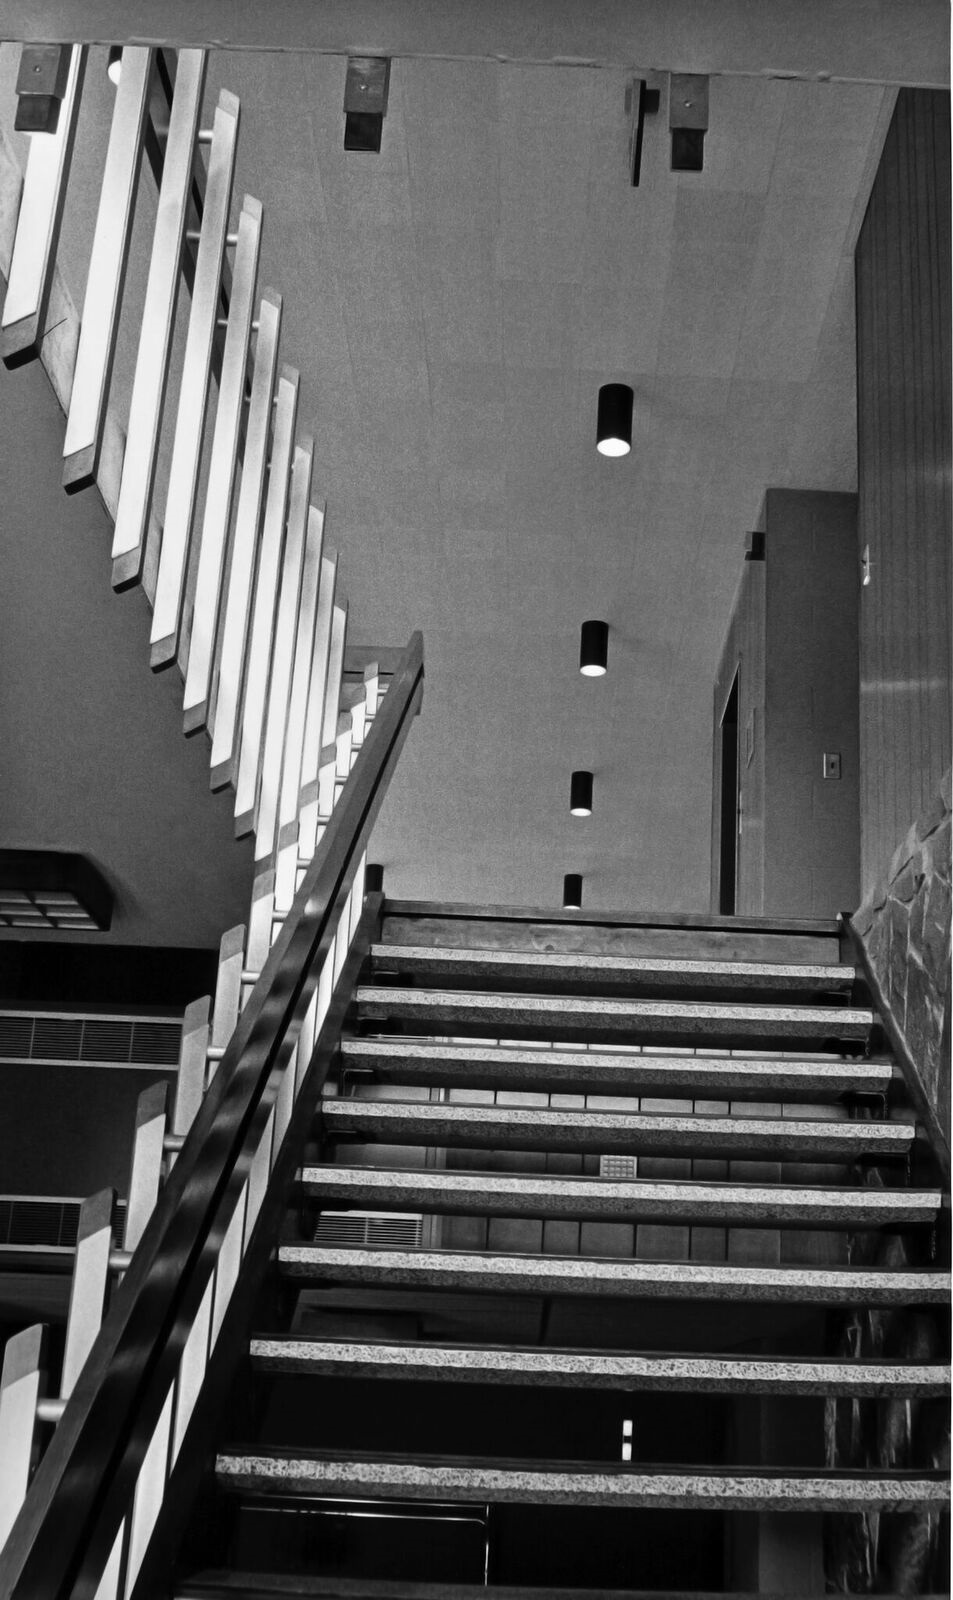 SouthPortland_Broadway_482_PublicLibary_1960s_Back_Stair_CHRISTOPHER_GRASSE.jpg